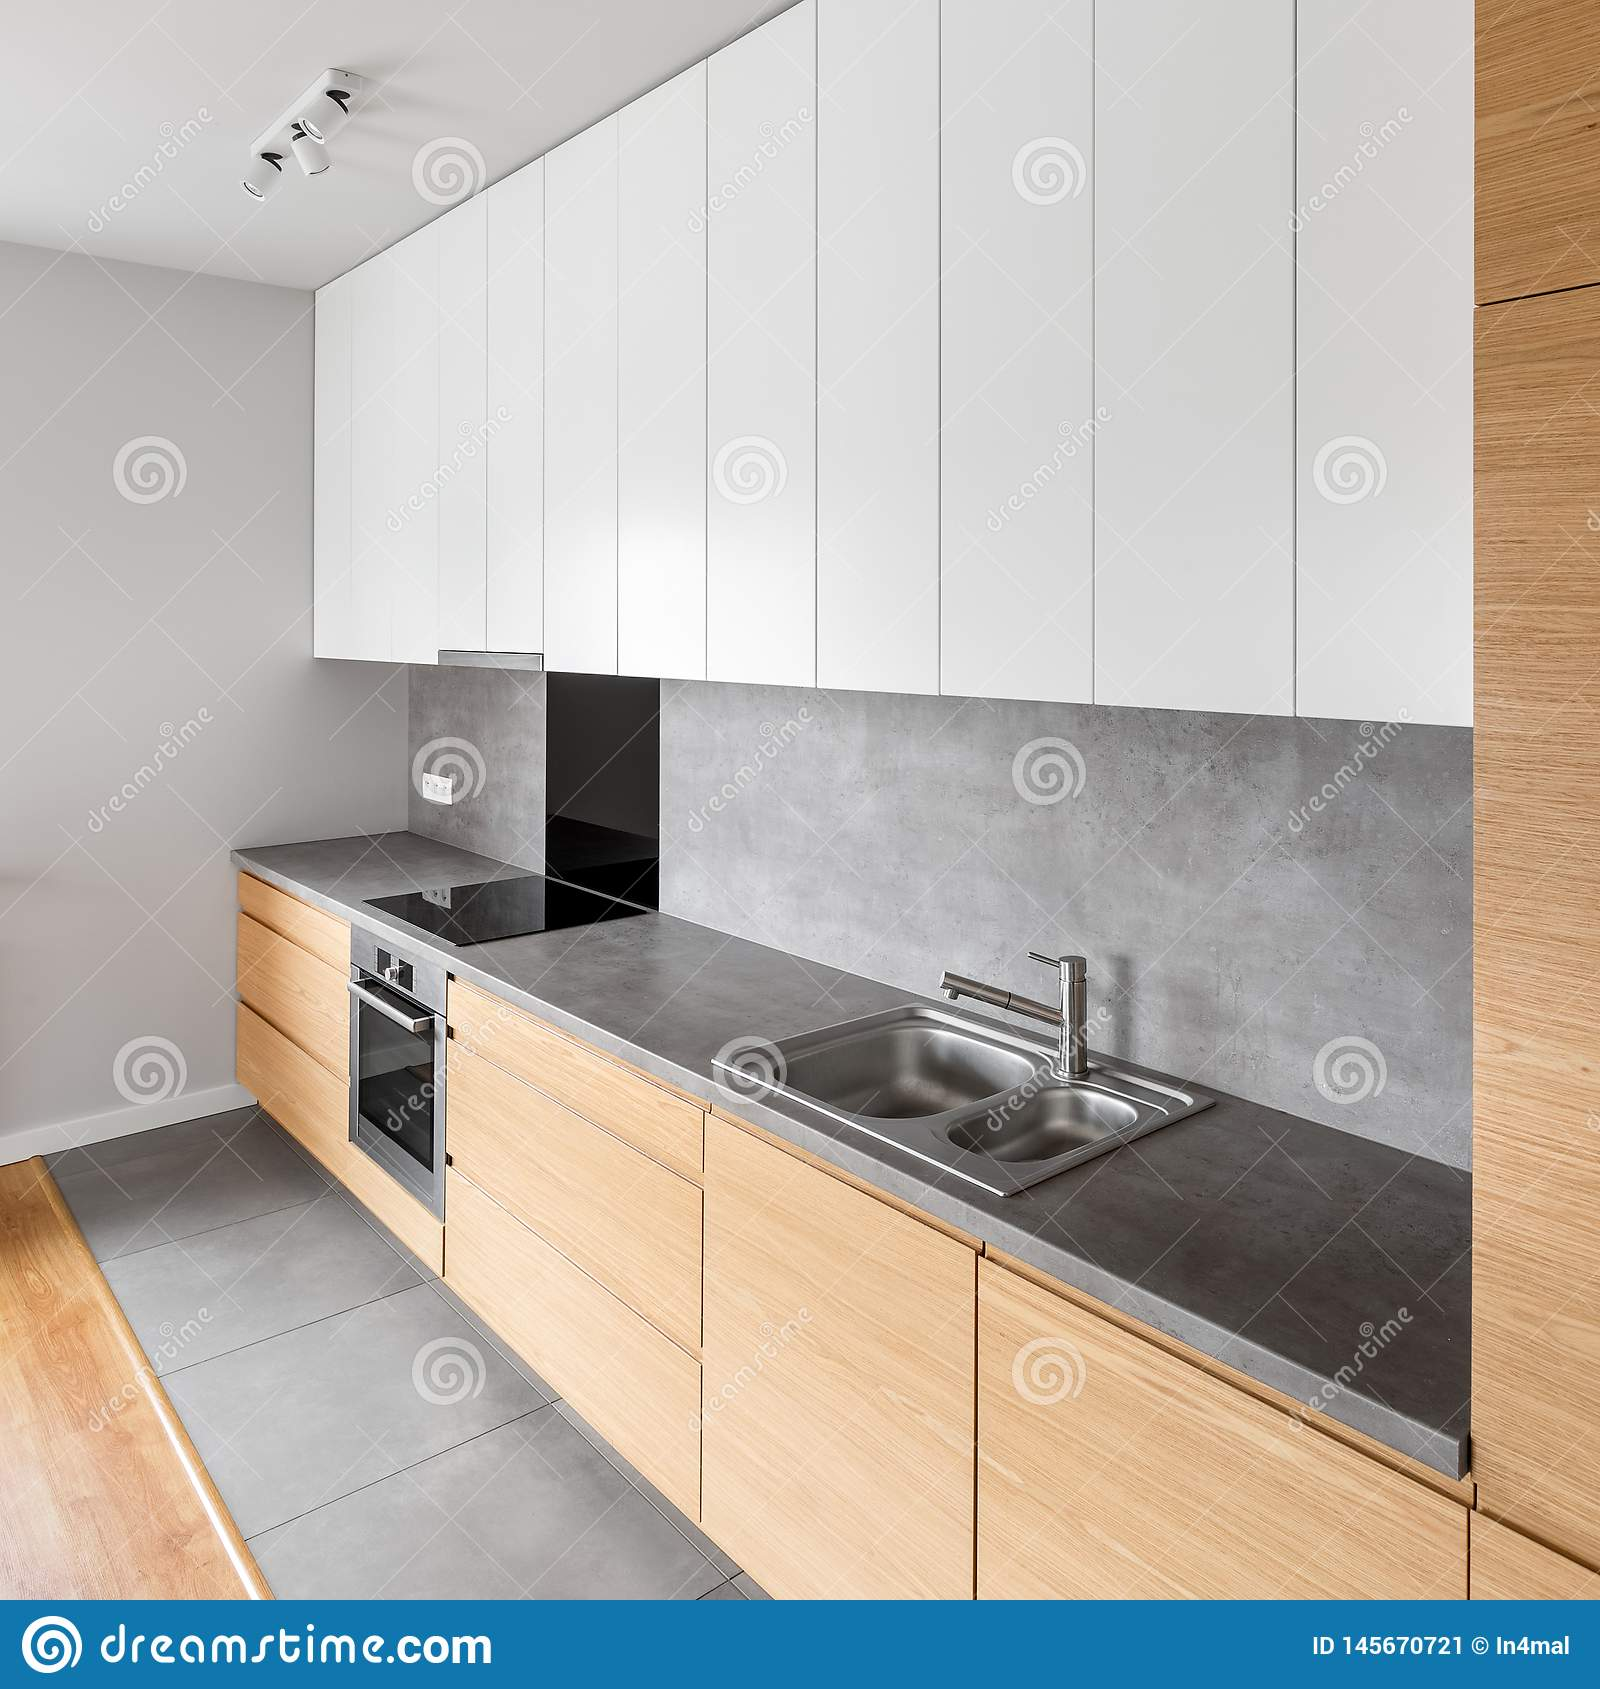 Contemporary Kitchen In White And Gray Stock Image Image Of Elegant Empty 145670721,Easy Plants To Grow Indoors From Seeds